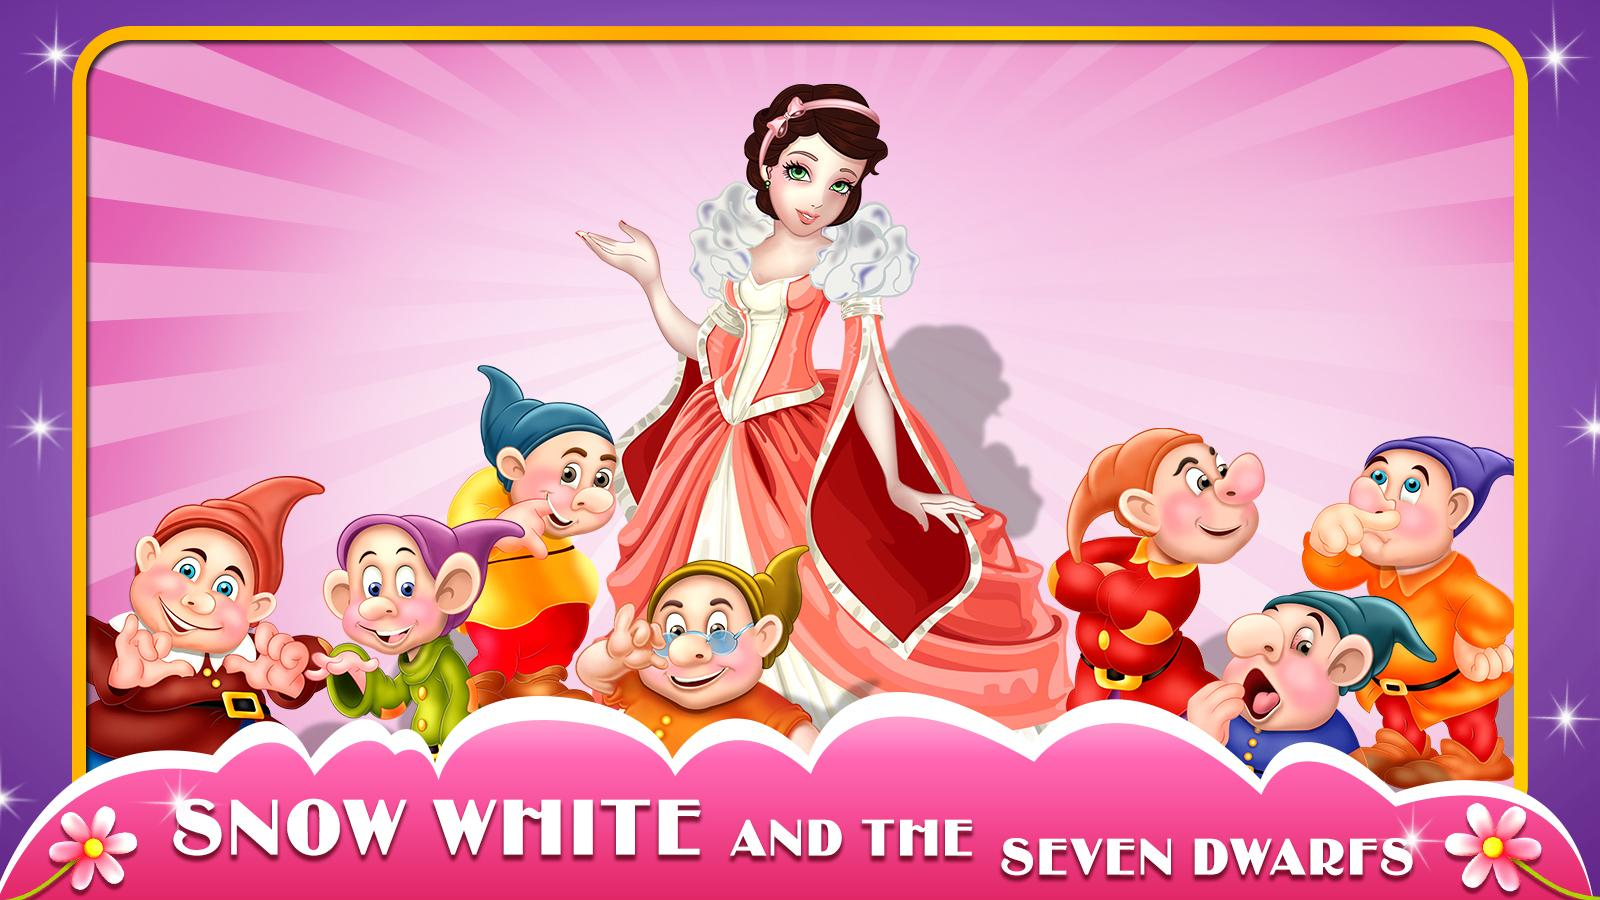 Snow white and the seven dwarfs story  nackt video